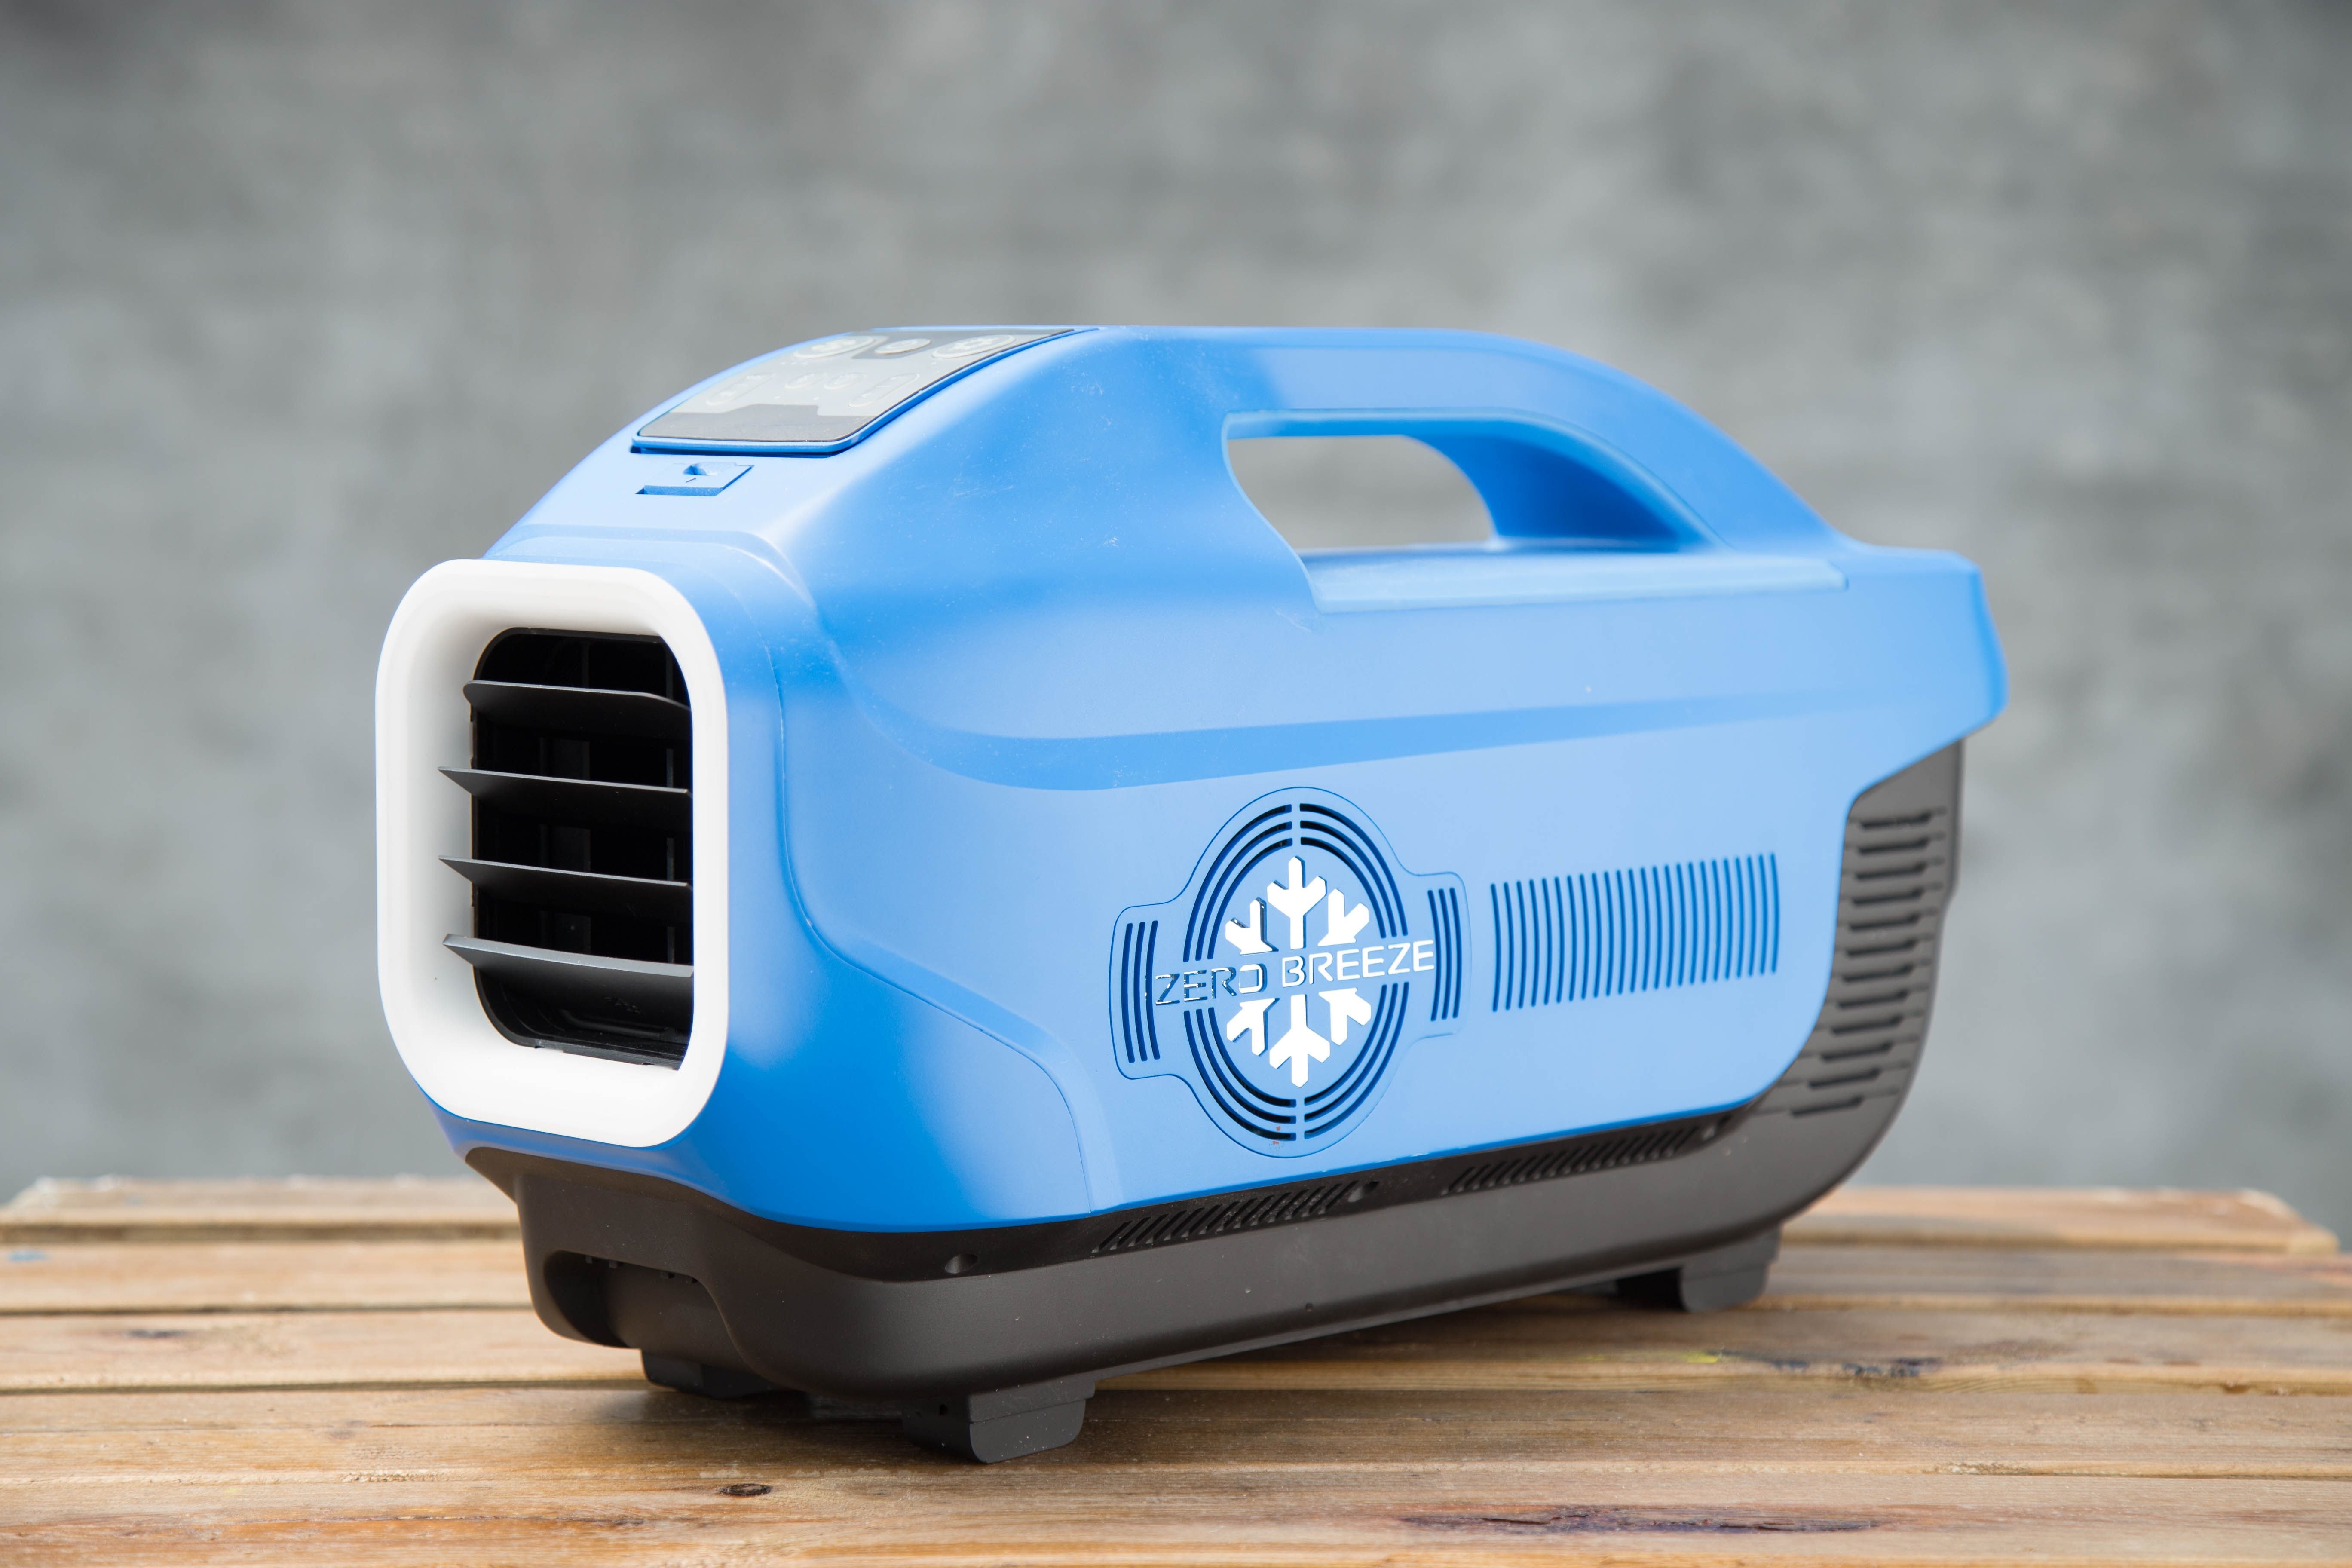 Lose the Heat. Stay Cool. Portable air